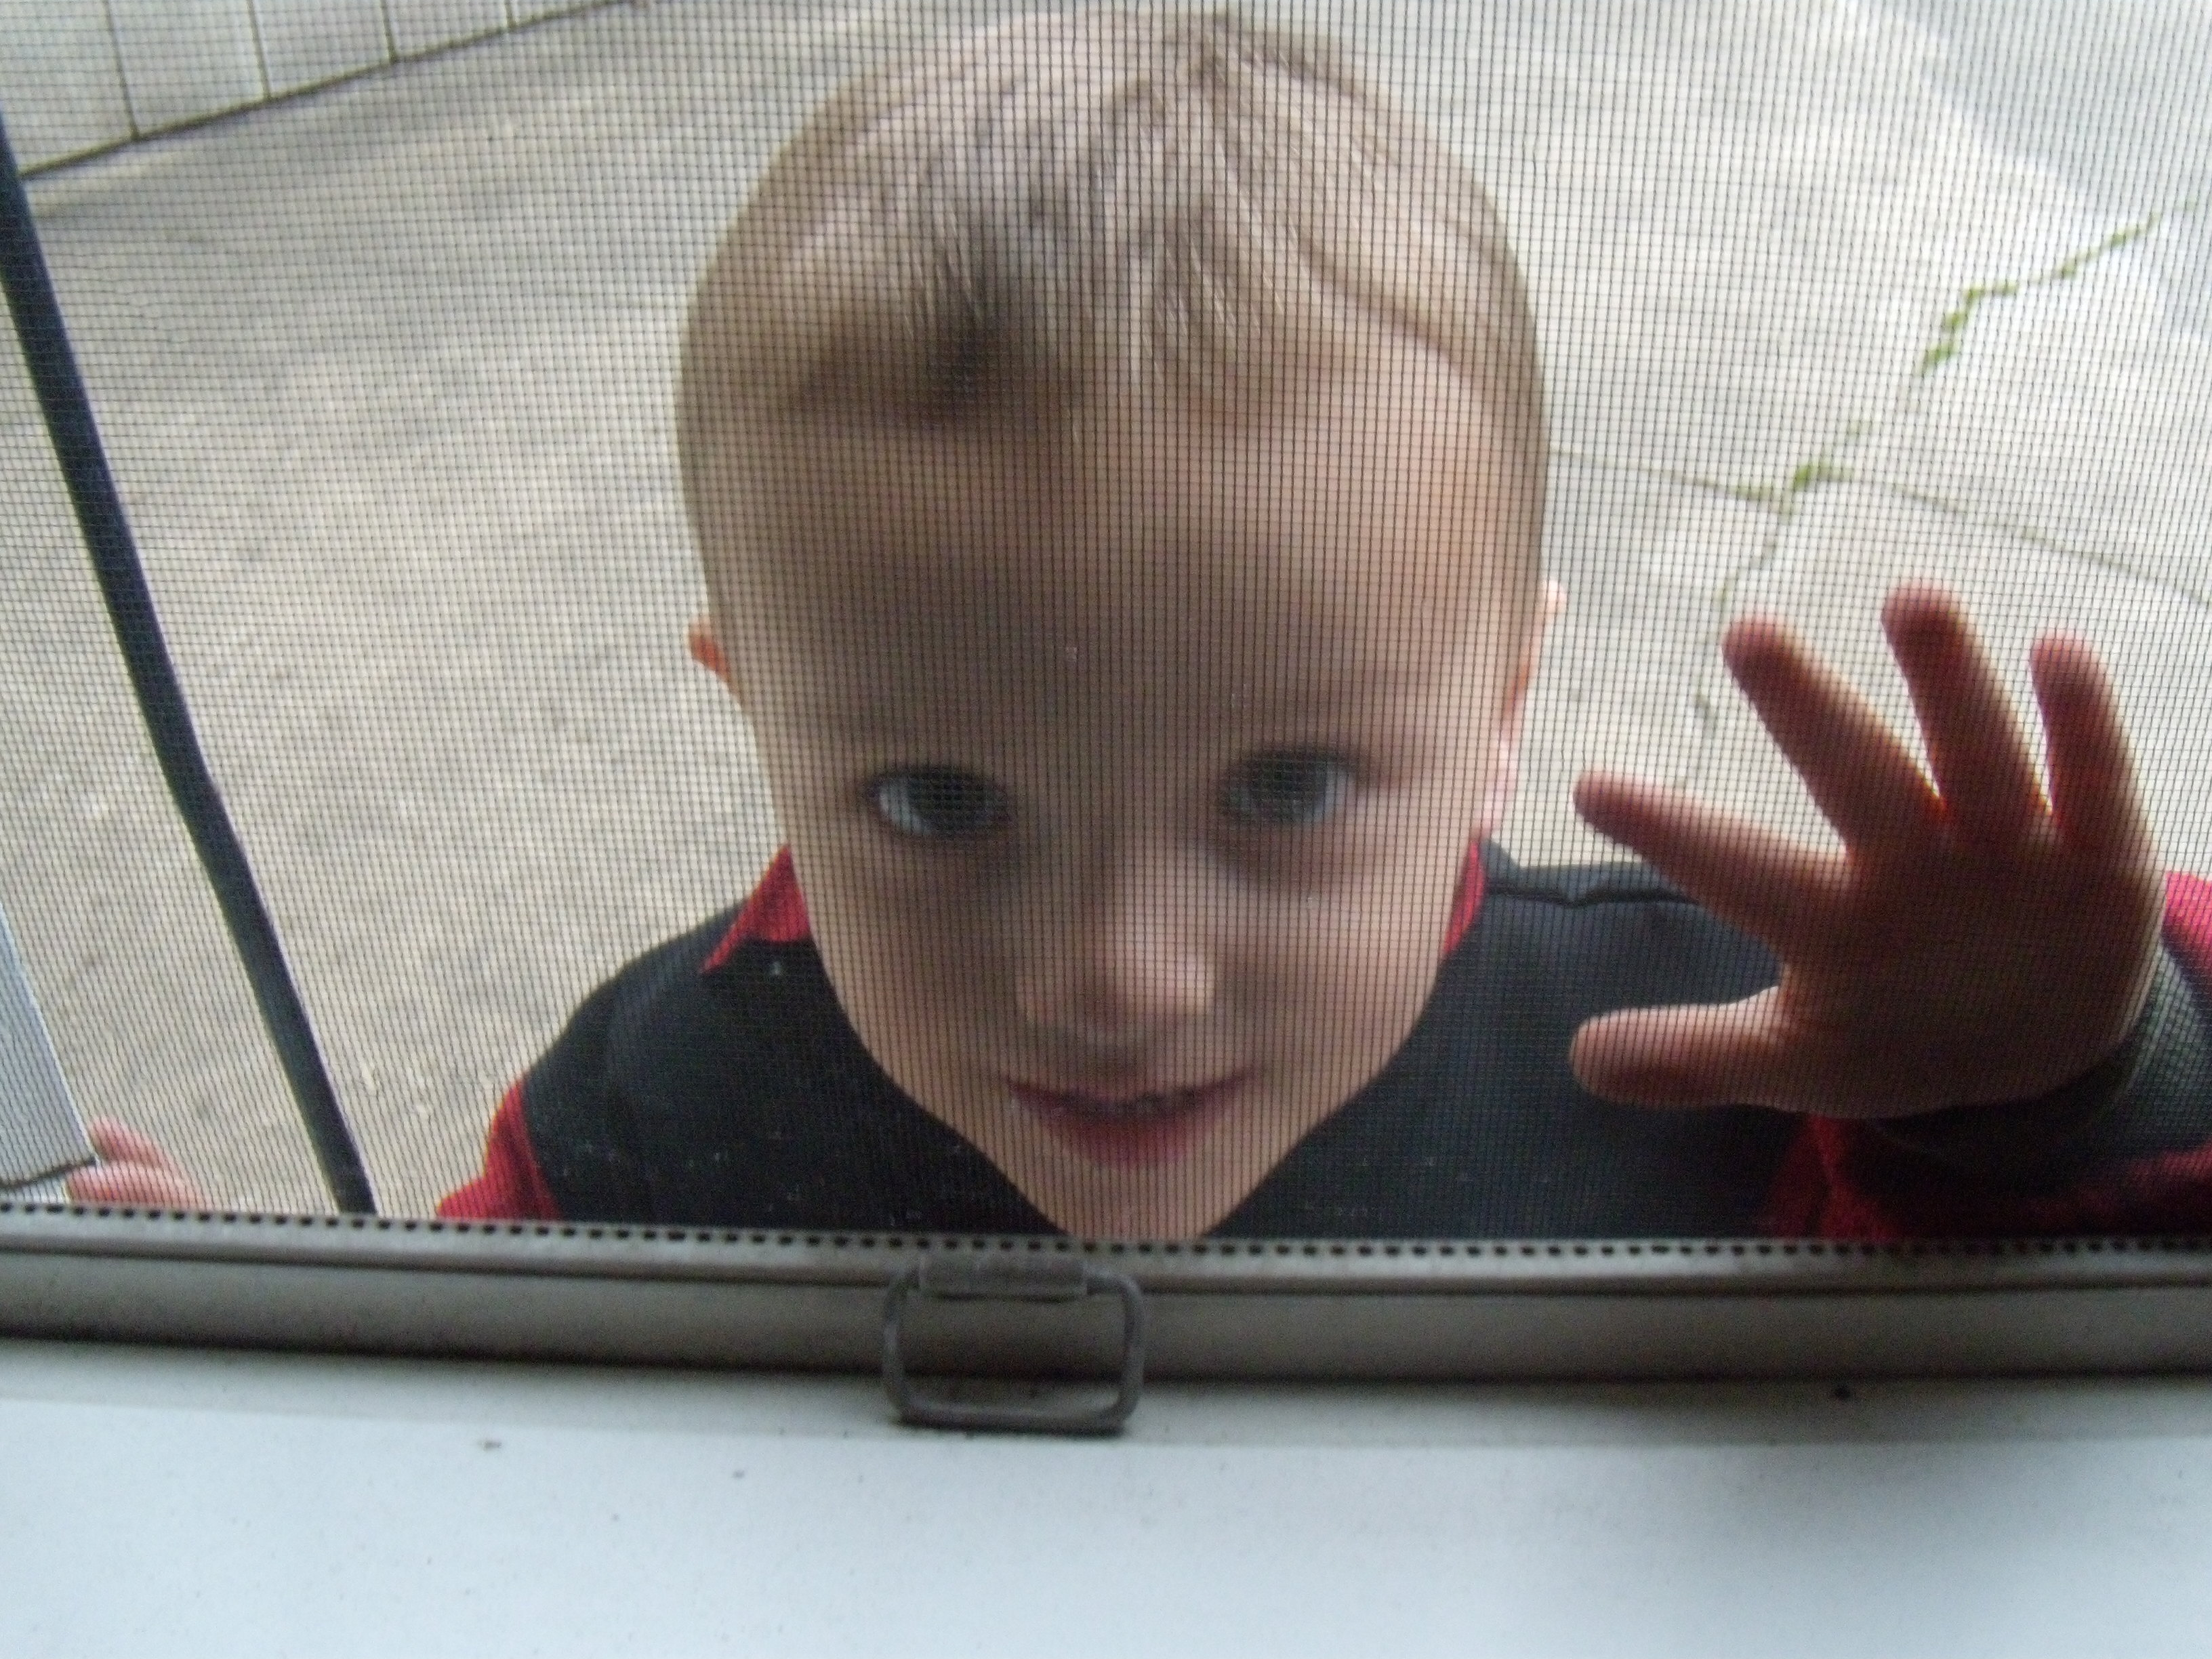 ethan looking in screen